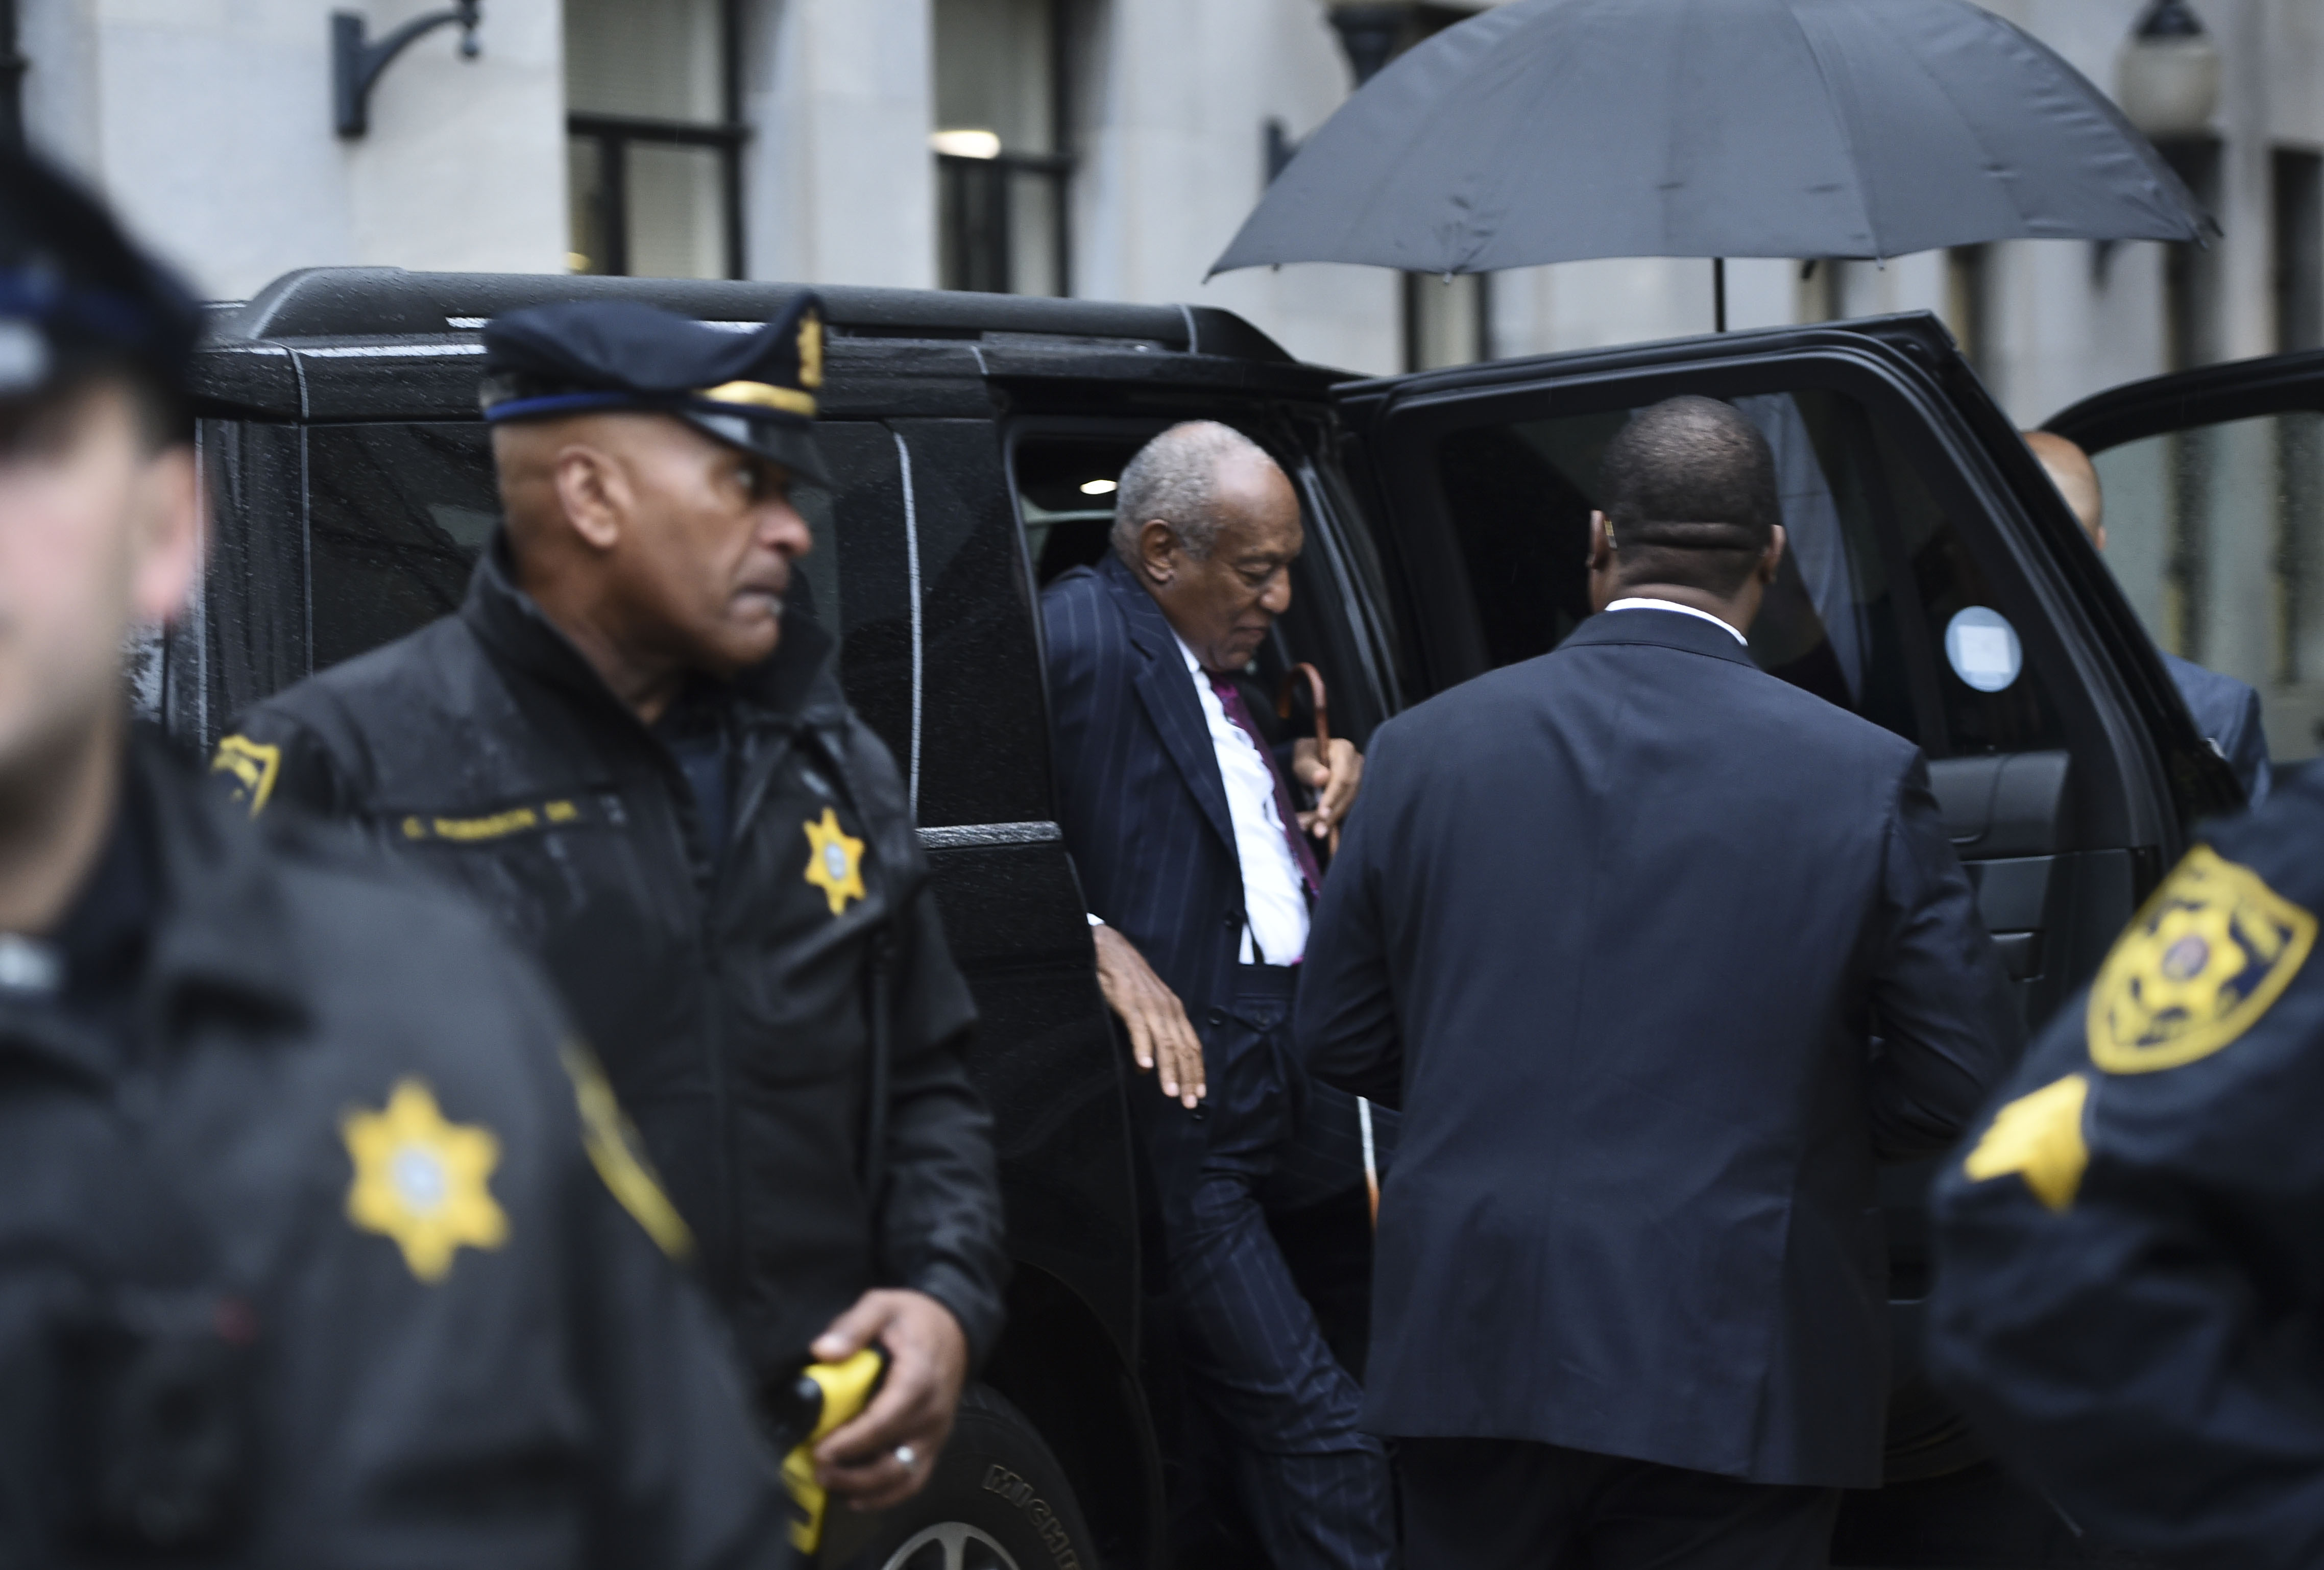 Bill Cosby arrives for a second day of a sentencing hearing at the Montgomery County Courthouse in Norristown, Pennsylvania.